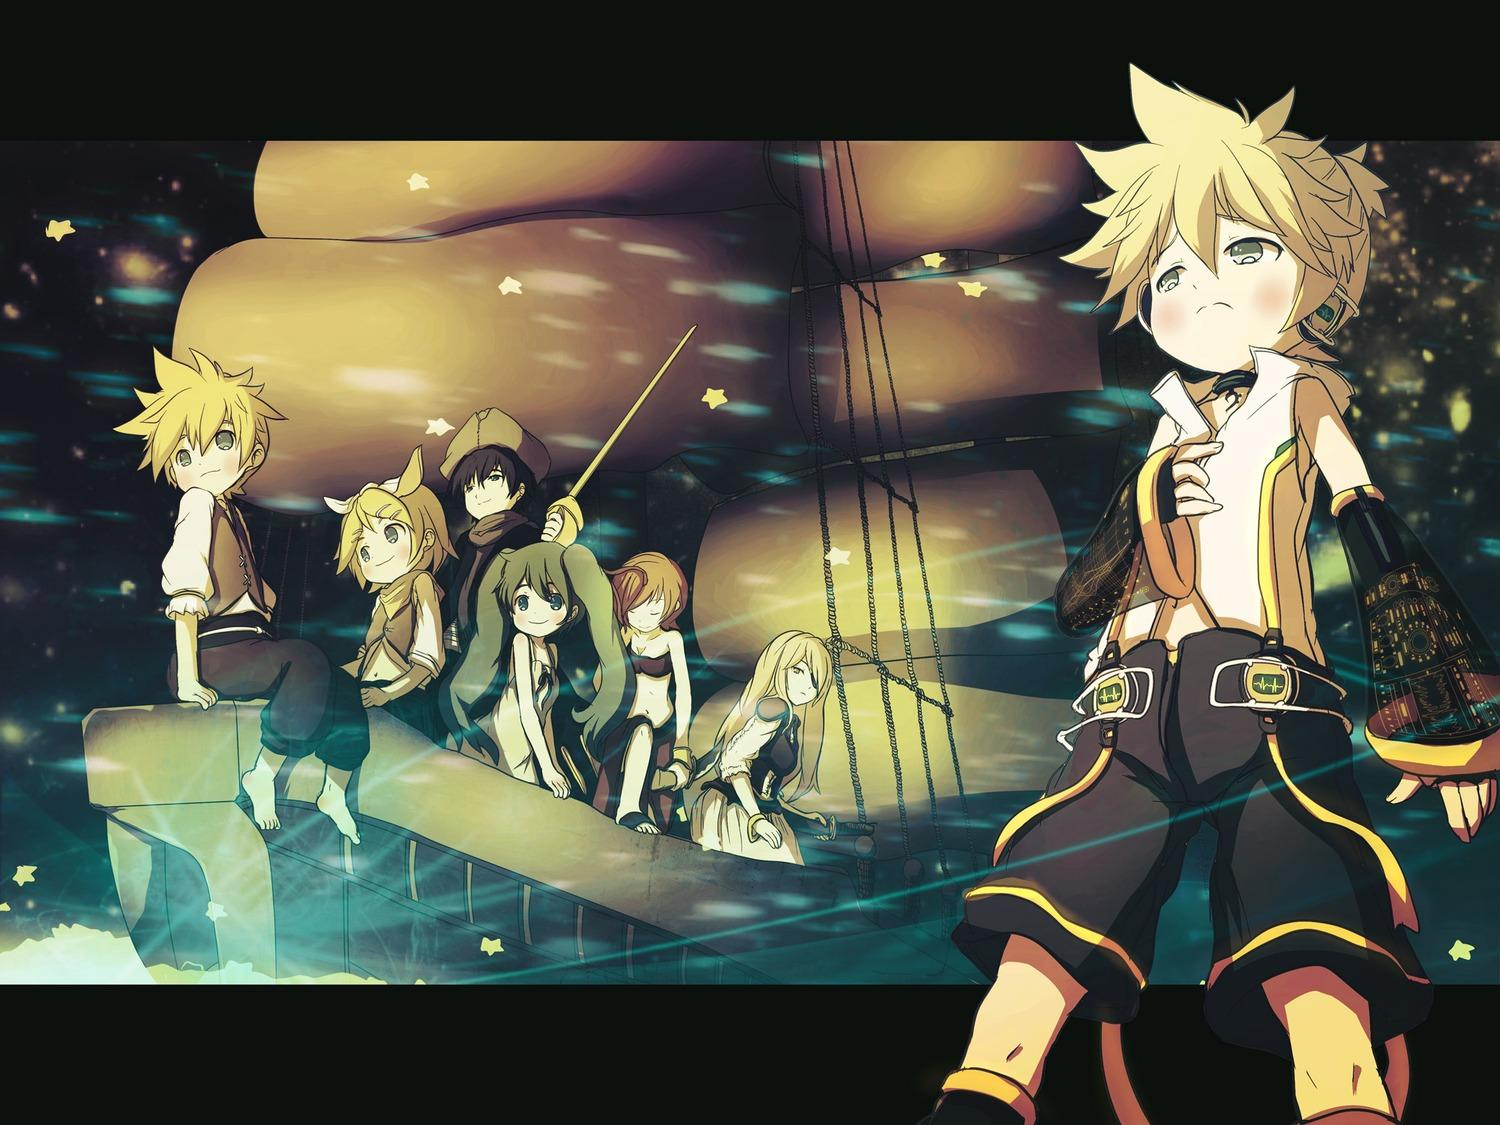 LenXrin and others - Rin and Len Kagamine Wallpaper (26421276 ...